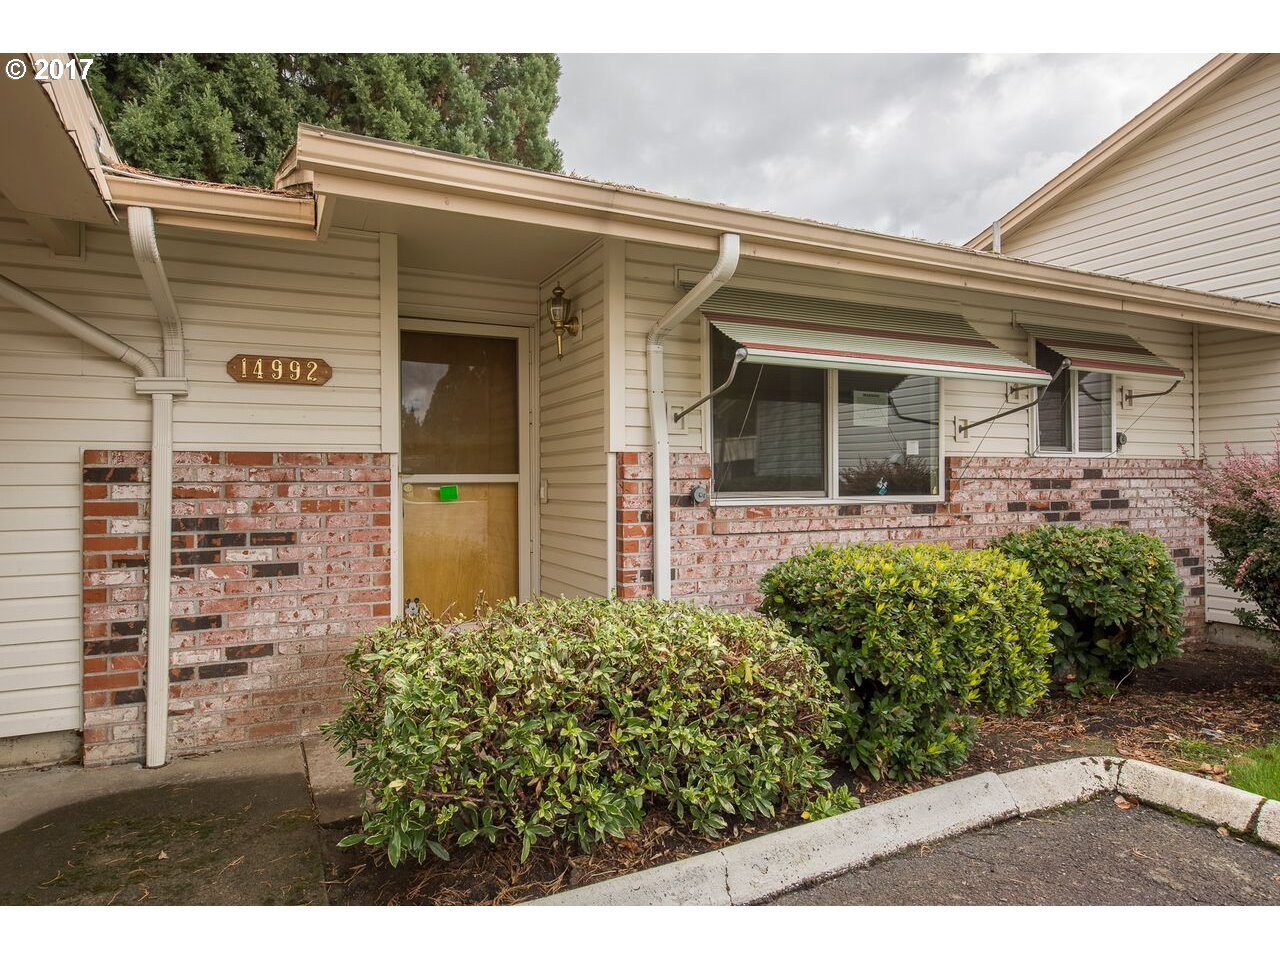 1336 sq. ft 2 bedrooms 2 bathrooms  House , Portland, OR